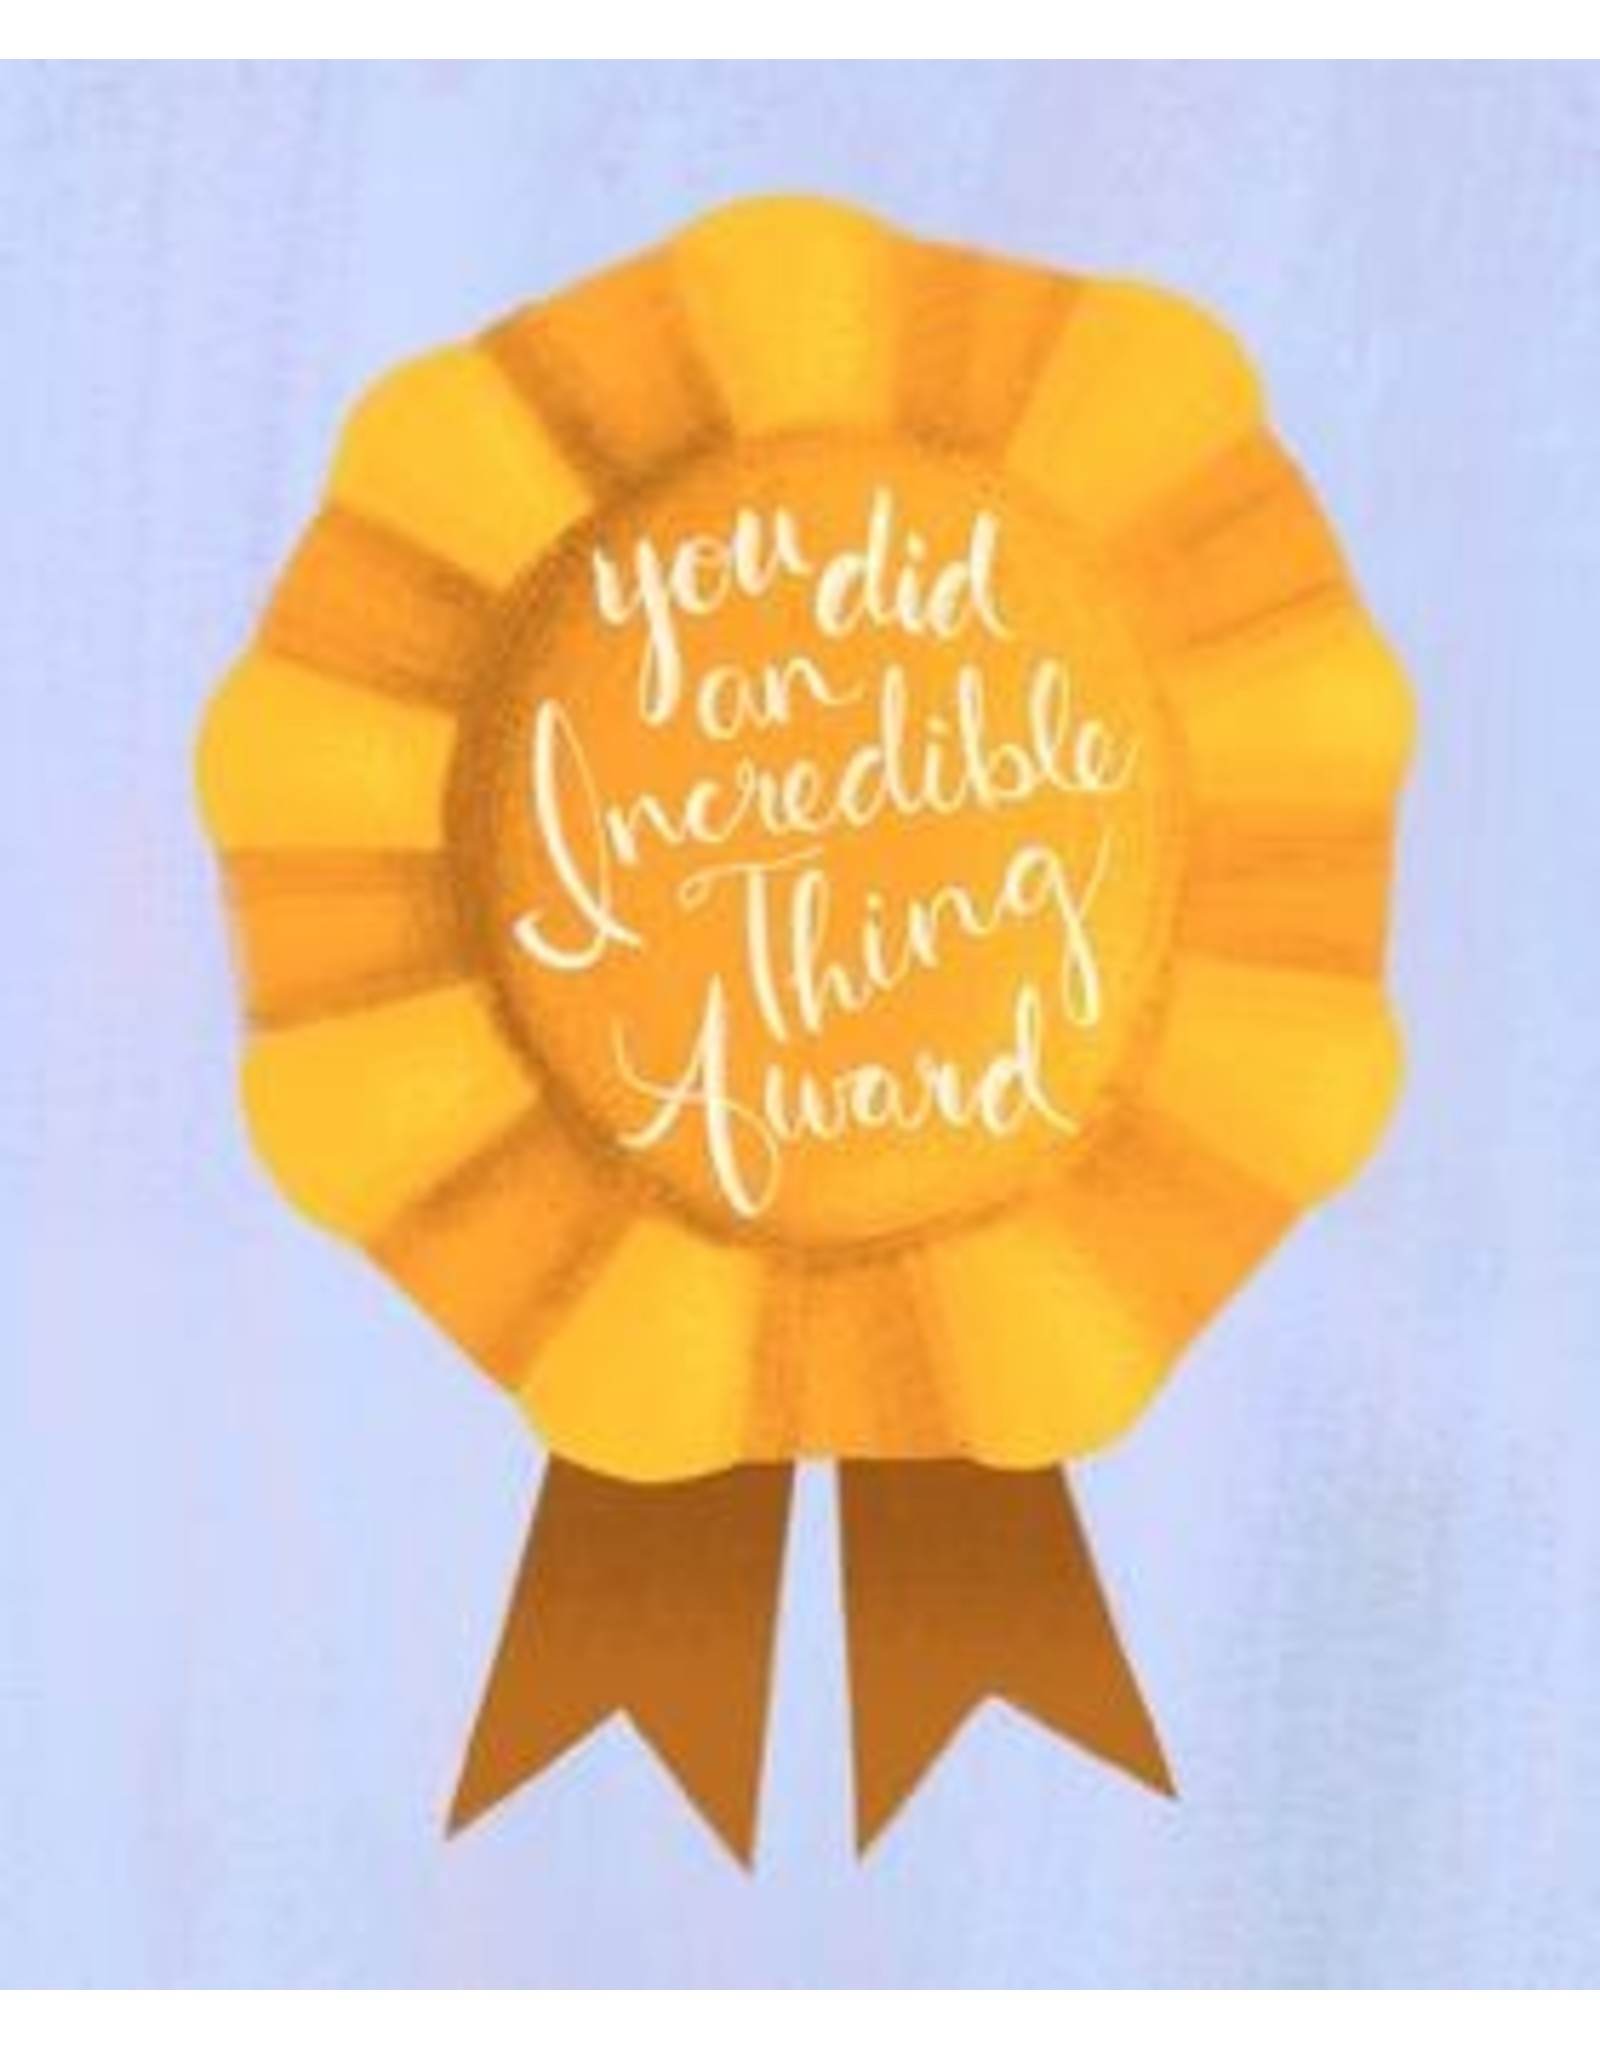 Meaghan Smith - You Did An Incredible Thing Award Card